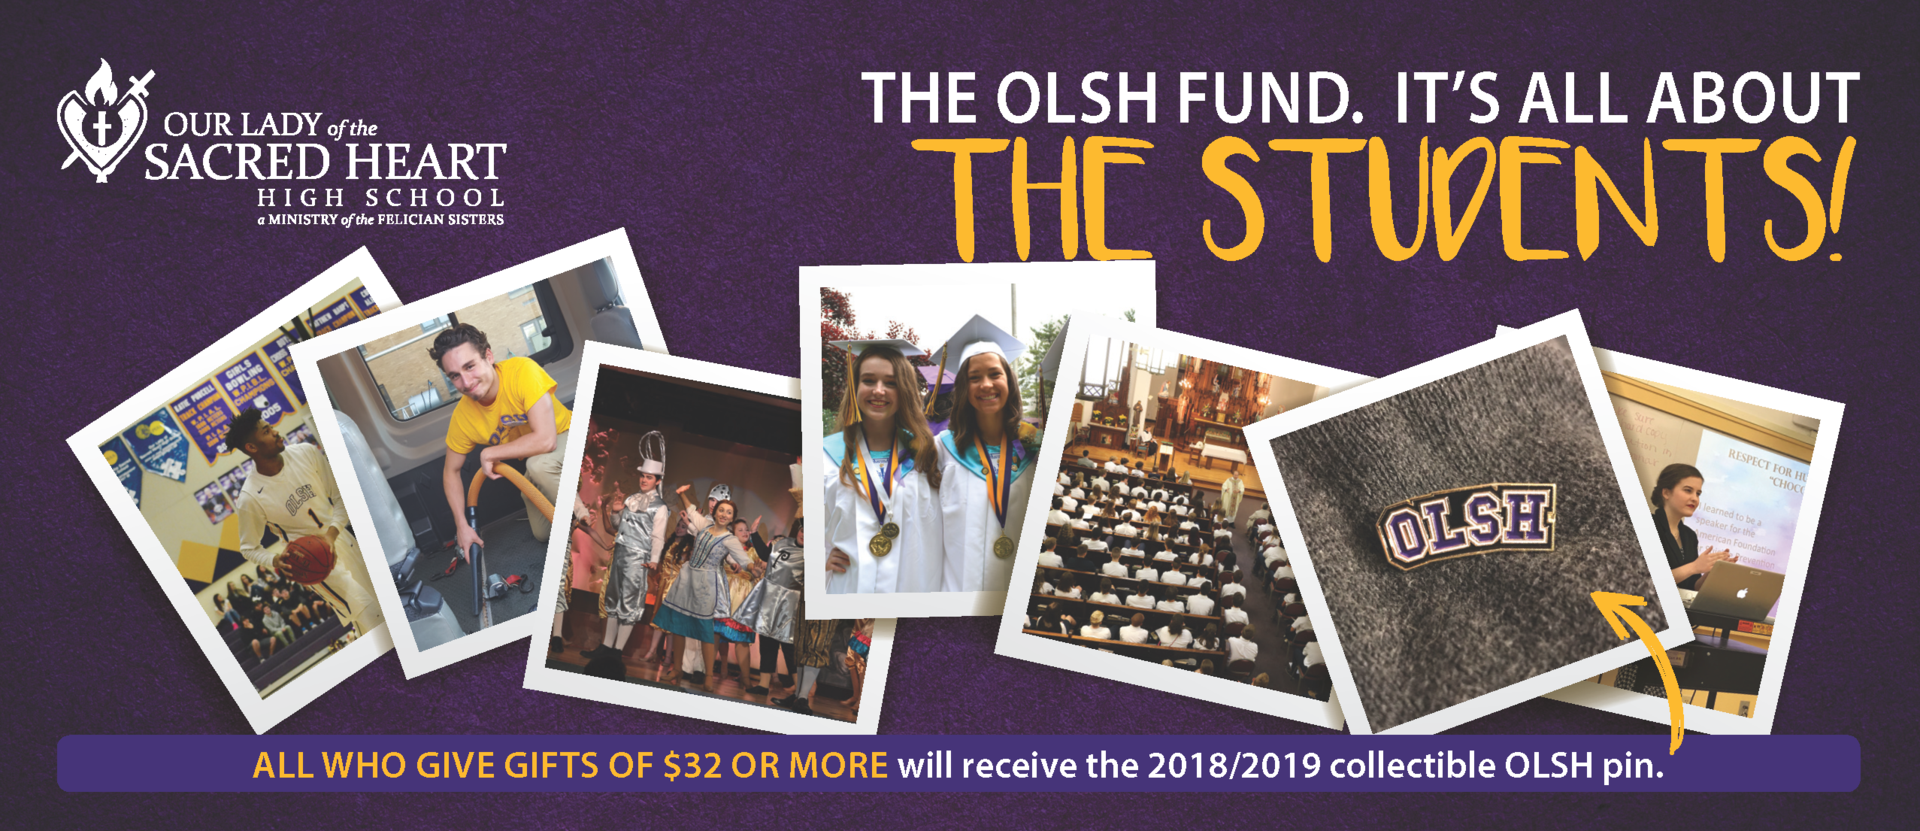 A collection of photos of student life at OLSH promoting giving to The OLSH Fund